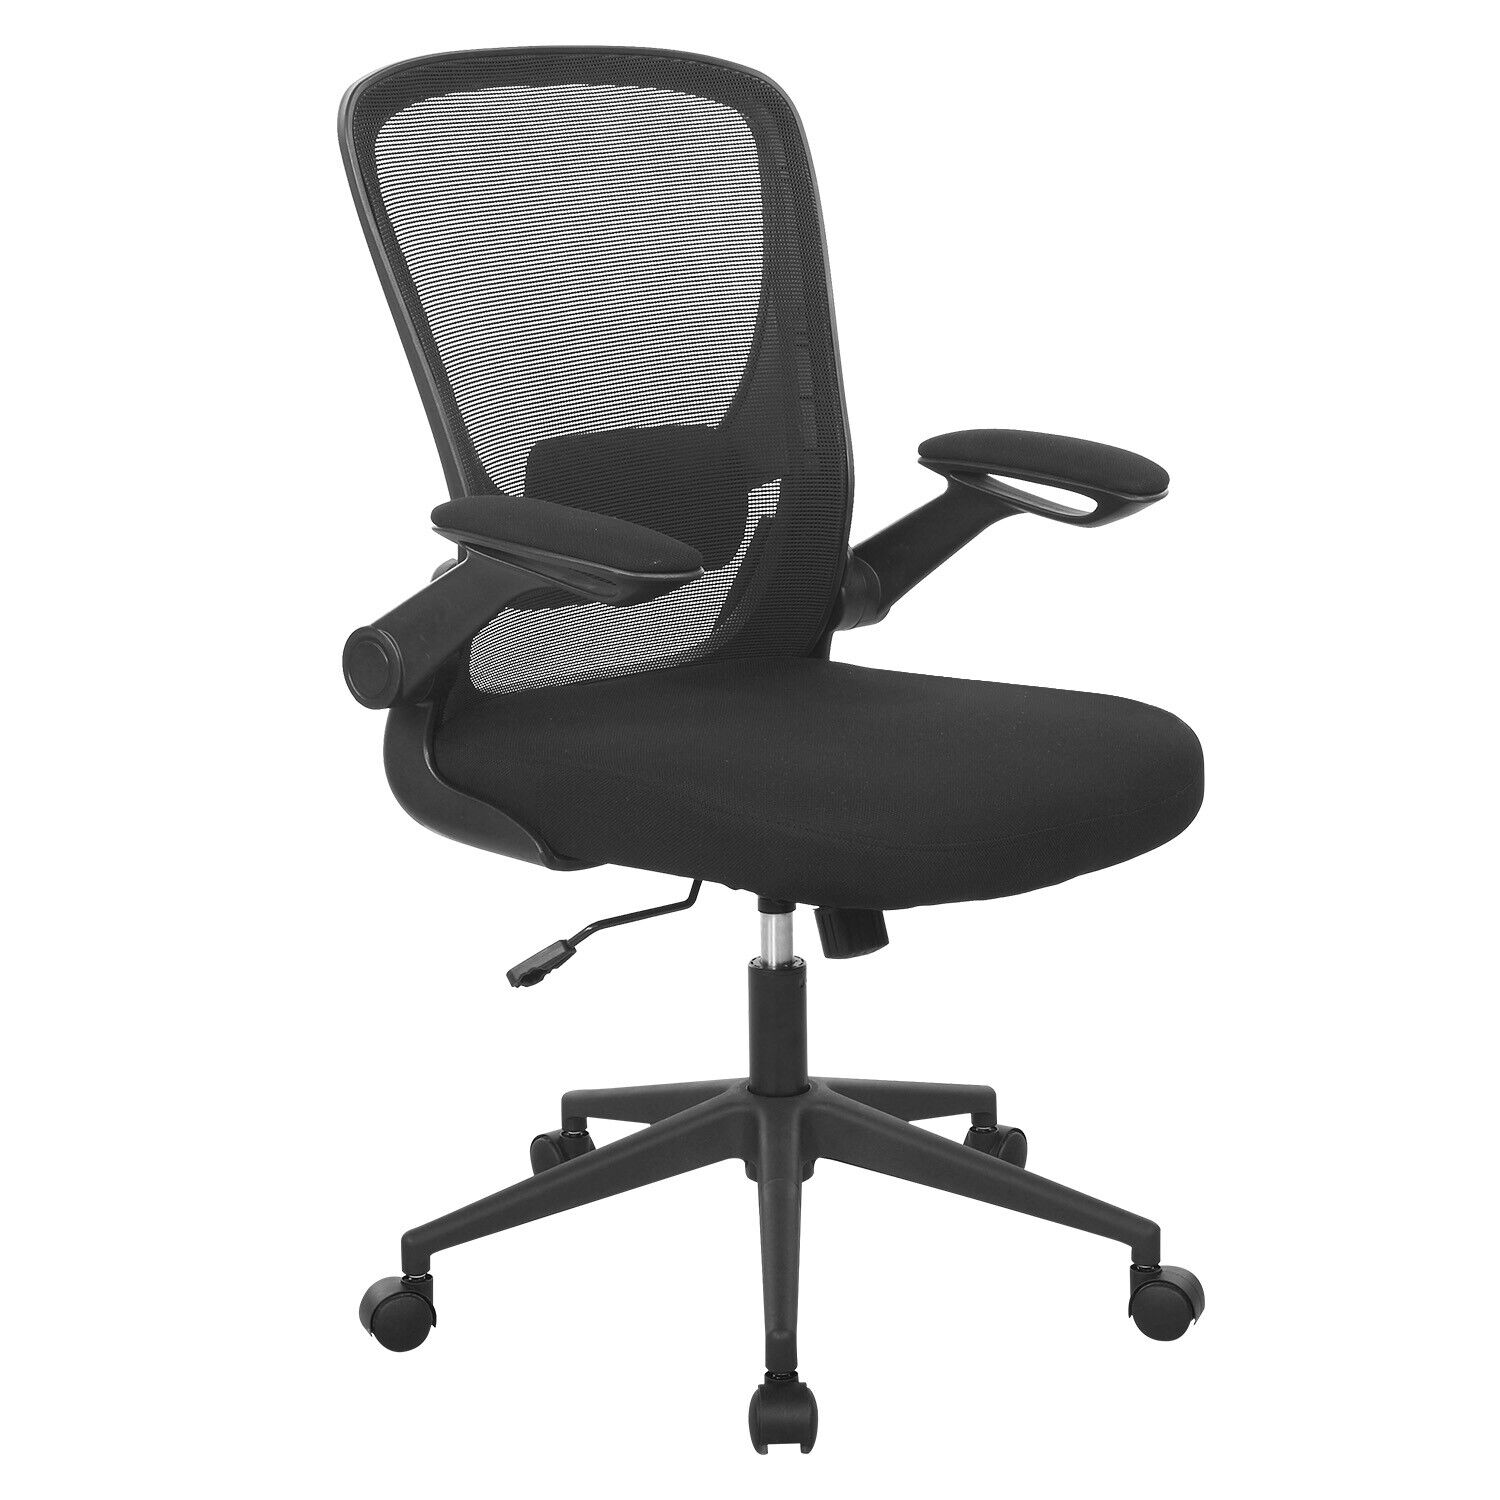 Set Of 3 Mid-Back Mesh Office Chair Computer Task Swivel Seat Ergonomic Chair Business & Industrial